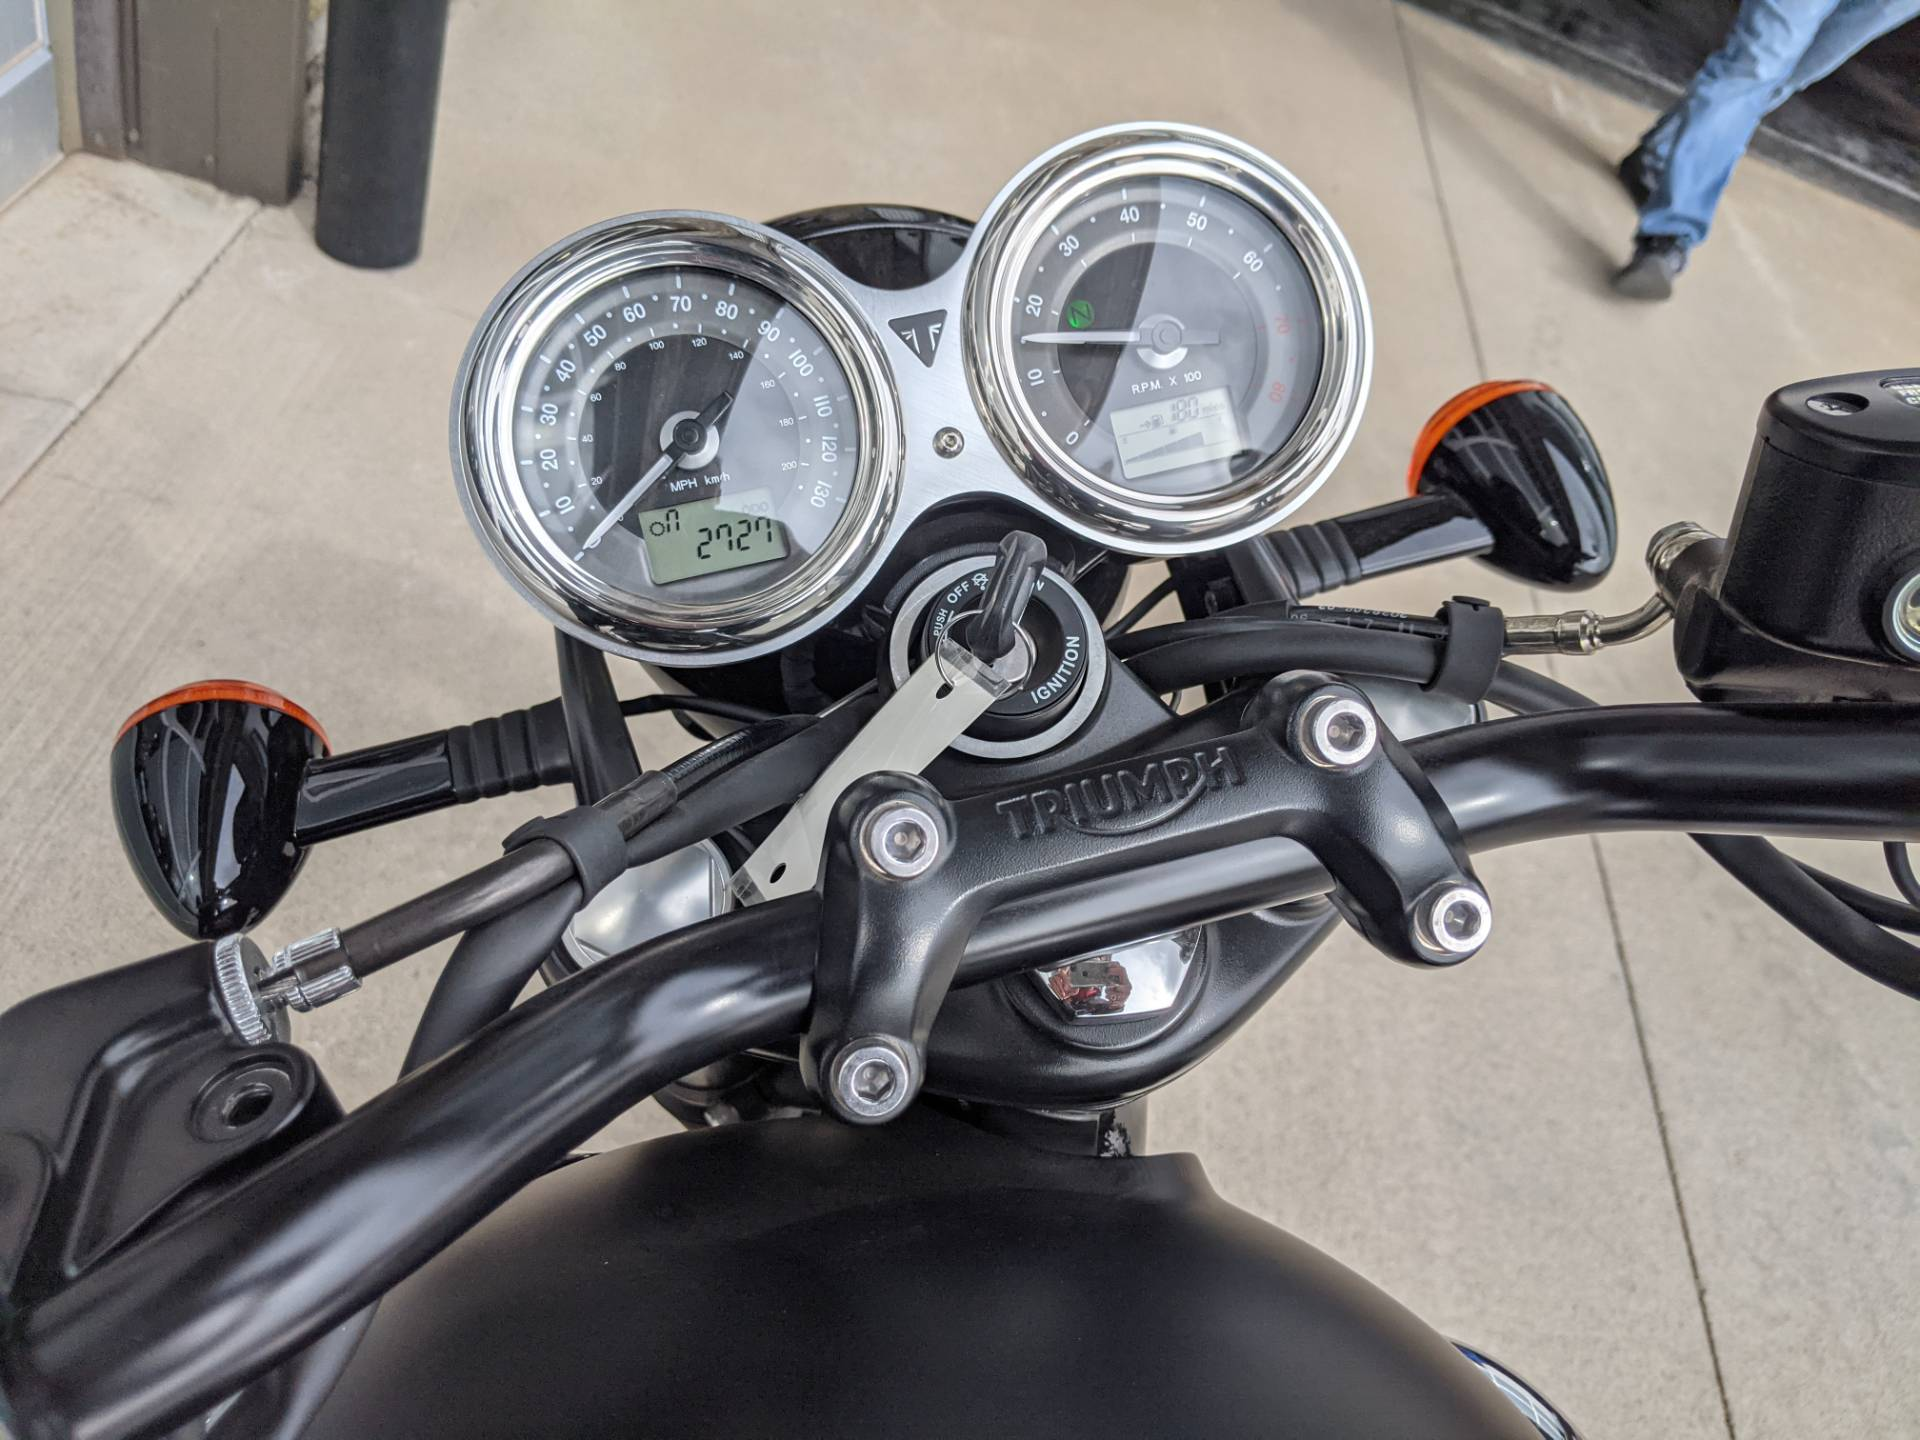 2018 Triumph Bonneville T100 Black in Rapid City, South Dakota - Photo 14